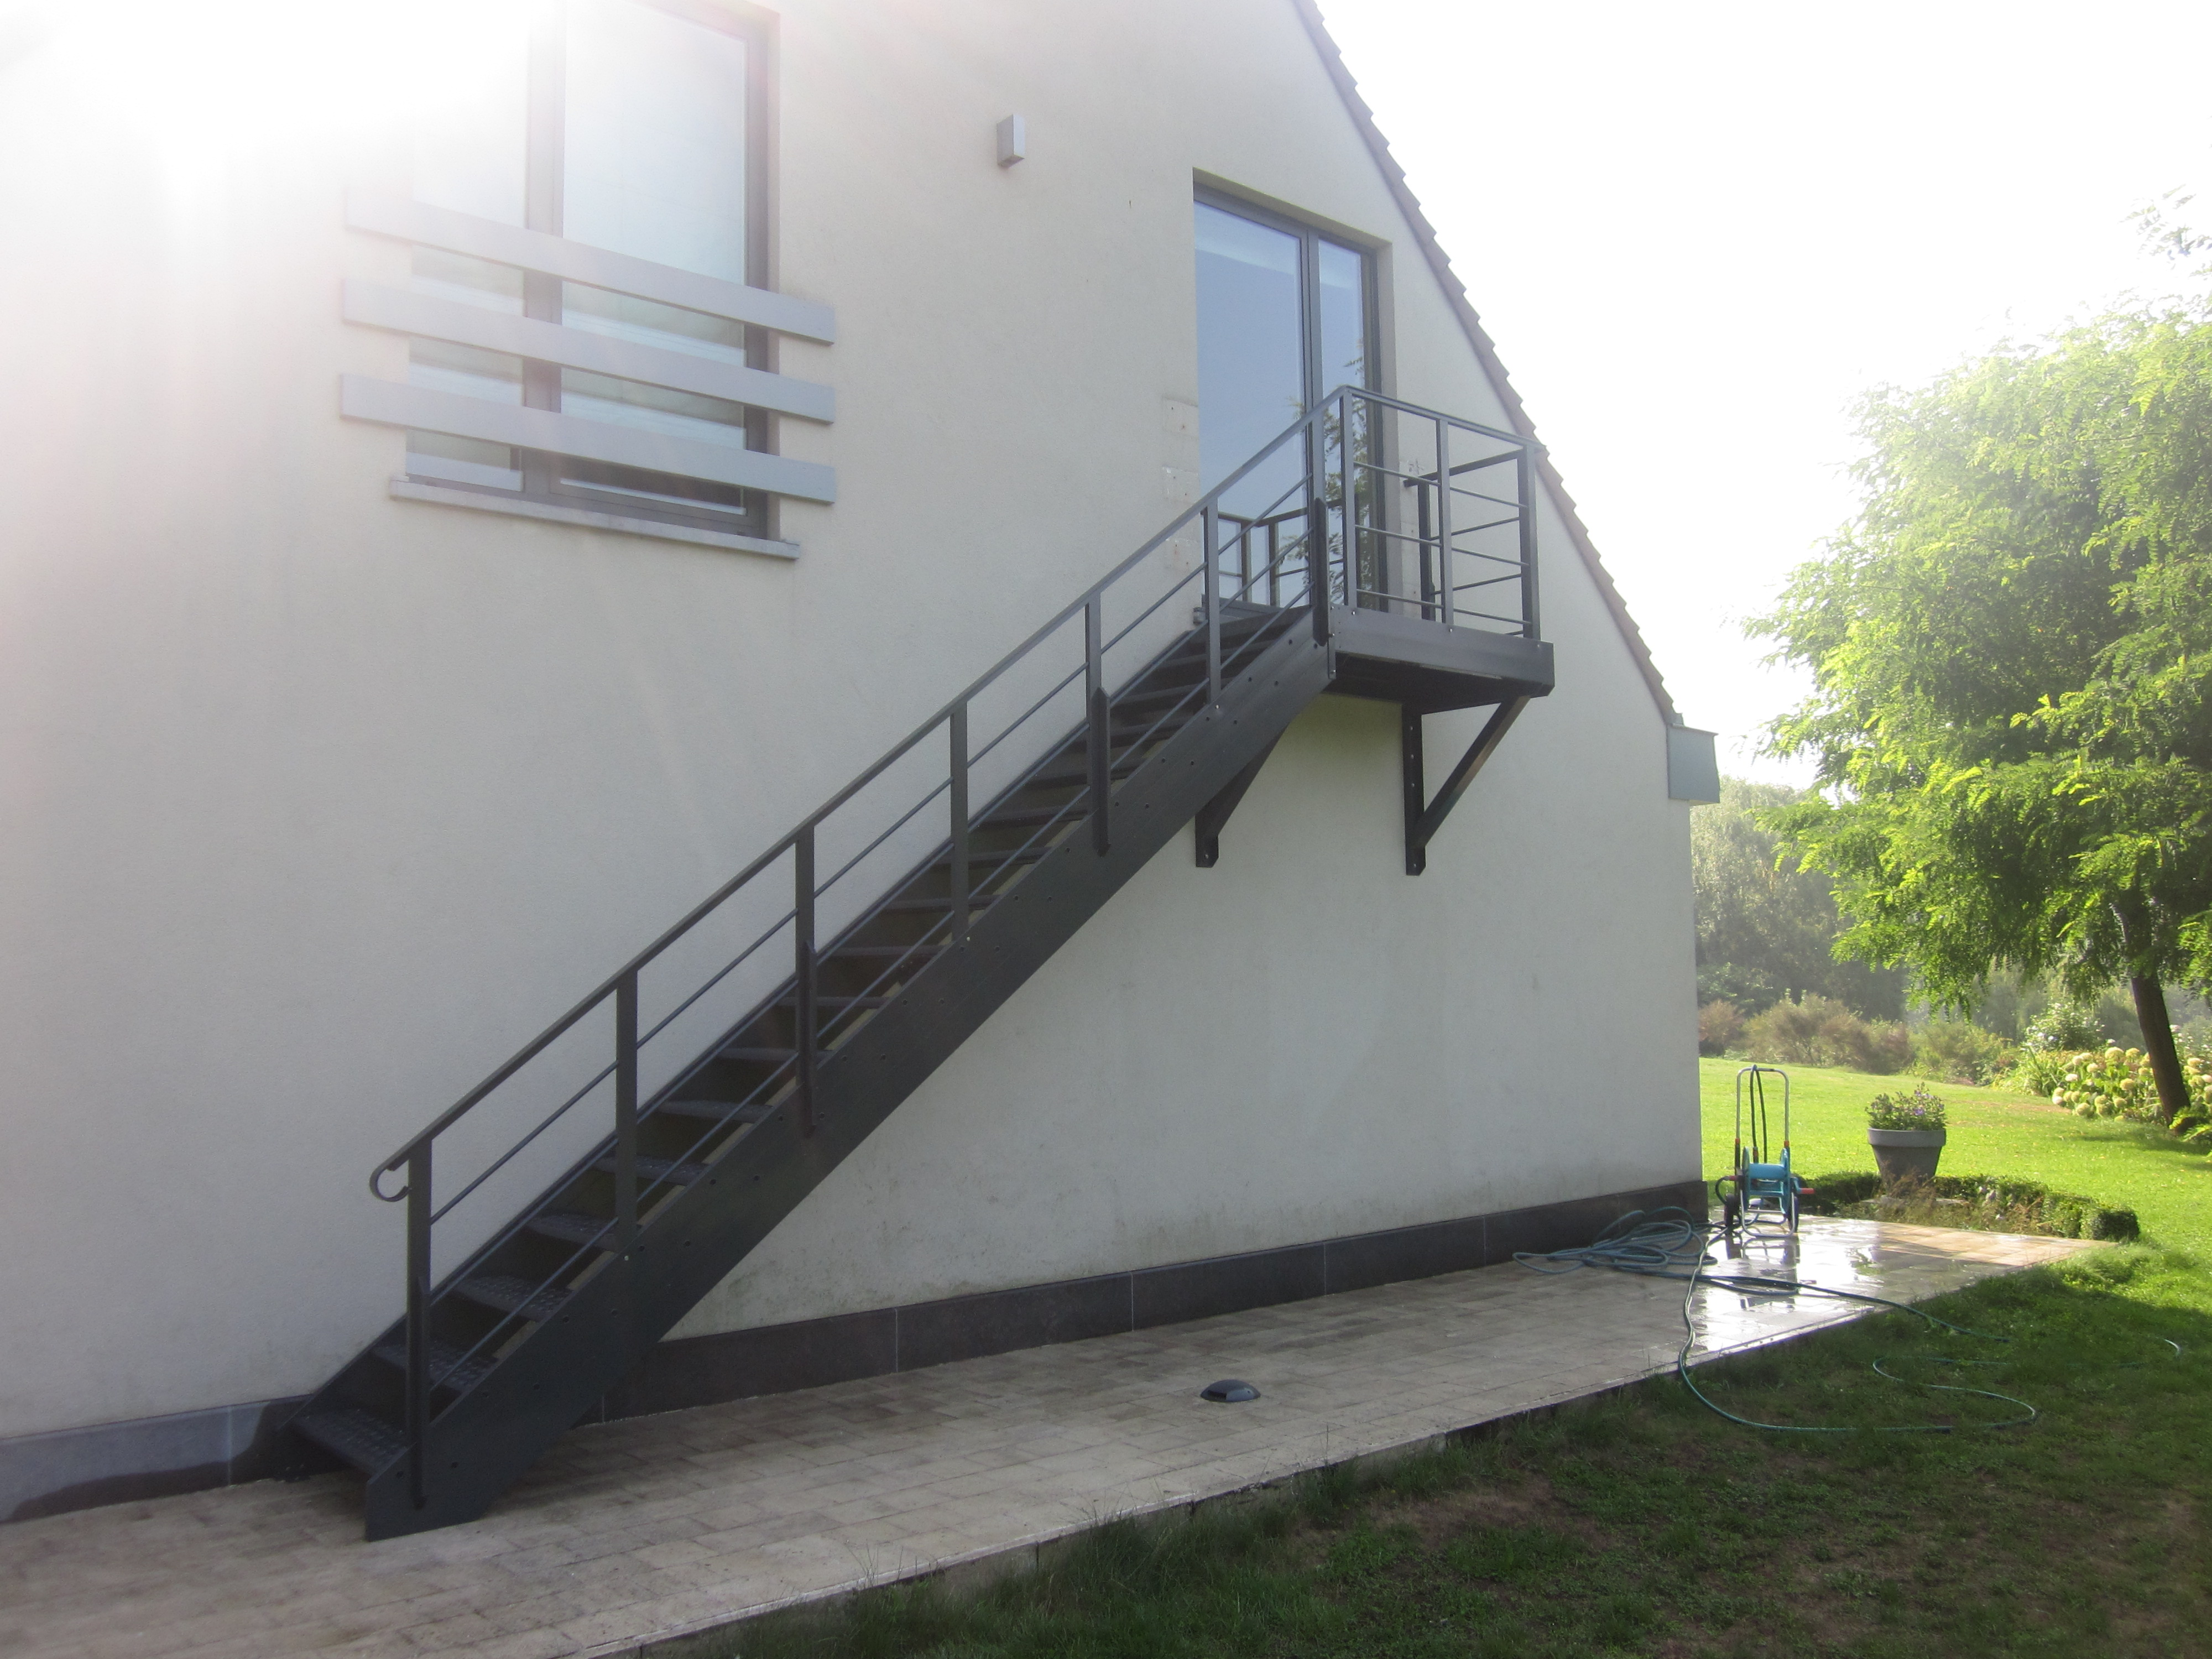 Garden access stairs in aluminium